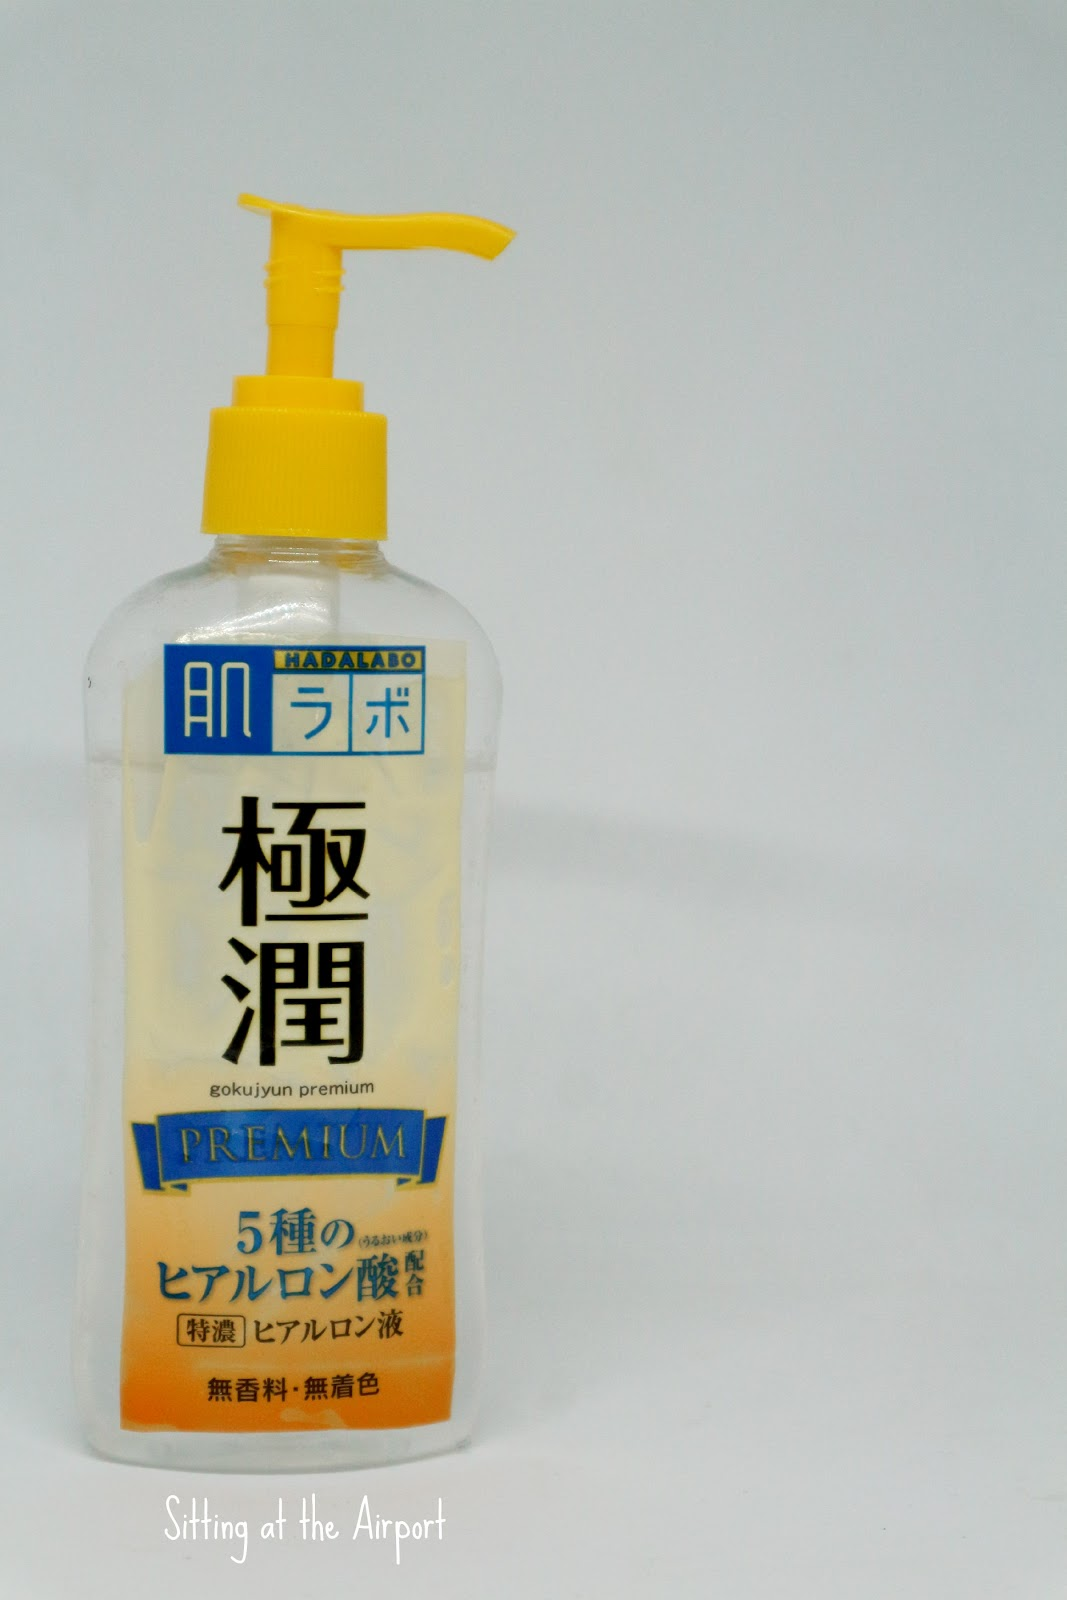 Hada Labo Gokujyun Premium Hyaluronic Acid Lotion Review